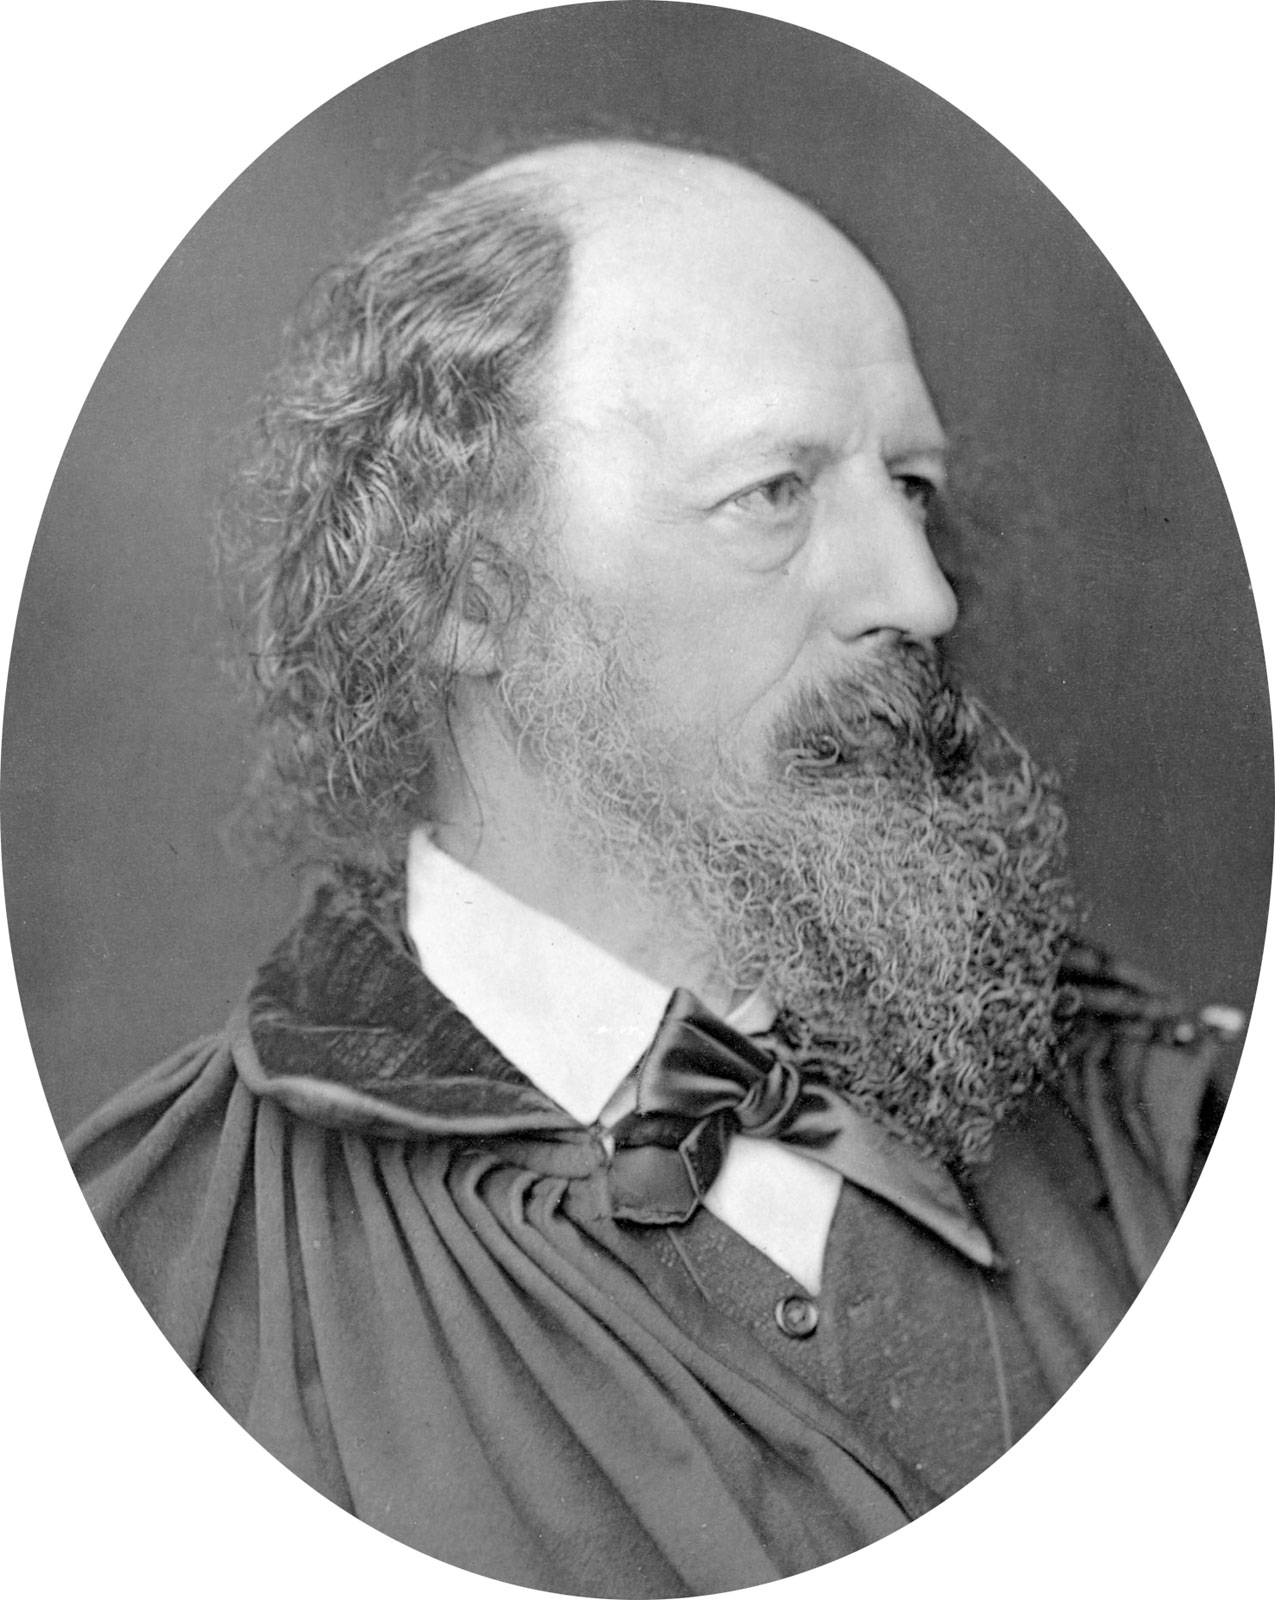 alfred lord tennyson biography analysis Tennyson's poems by alfred tennyson these papers were written primarily by students and provide critical analysis of select poems by alfred lord tennyson.